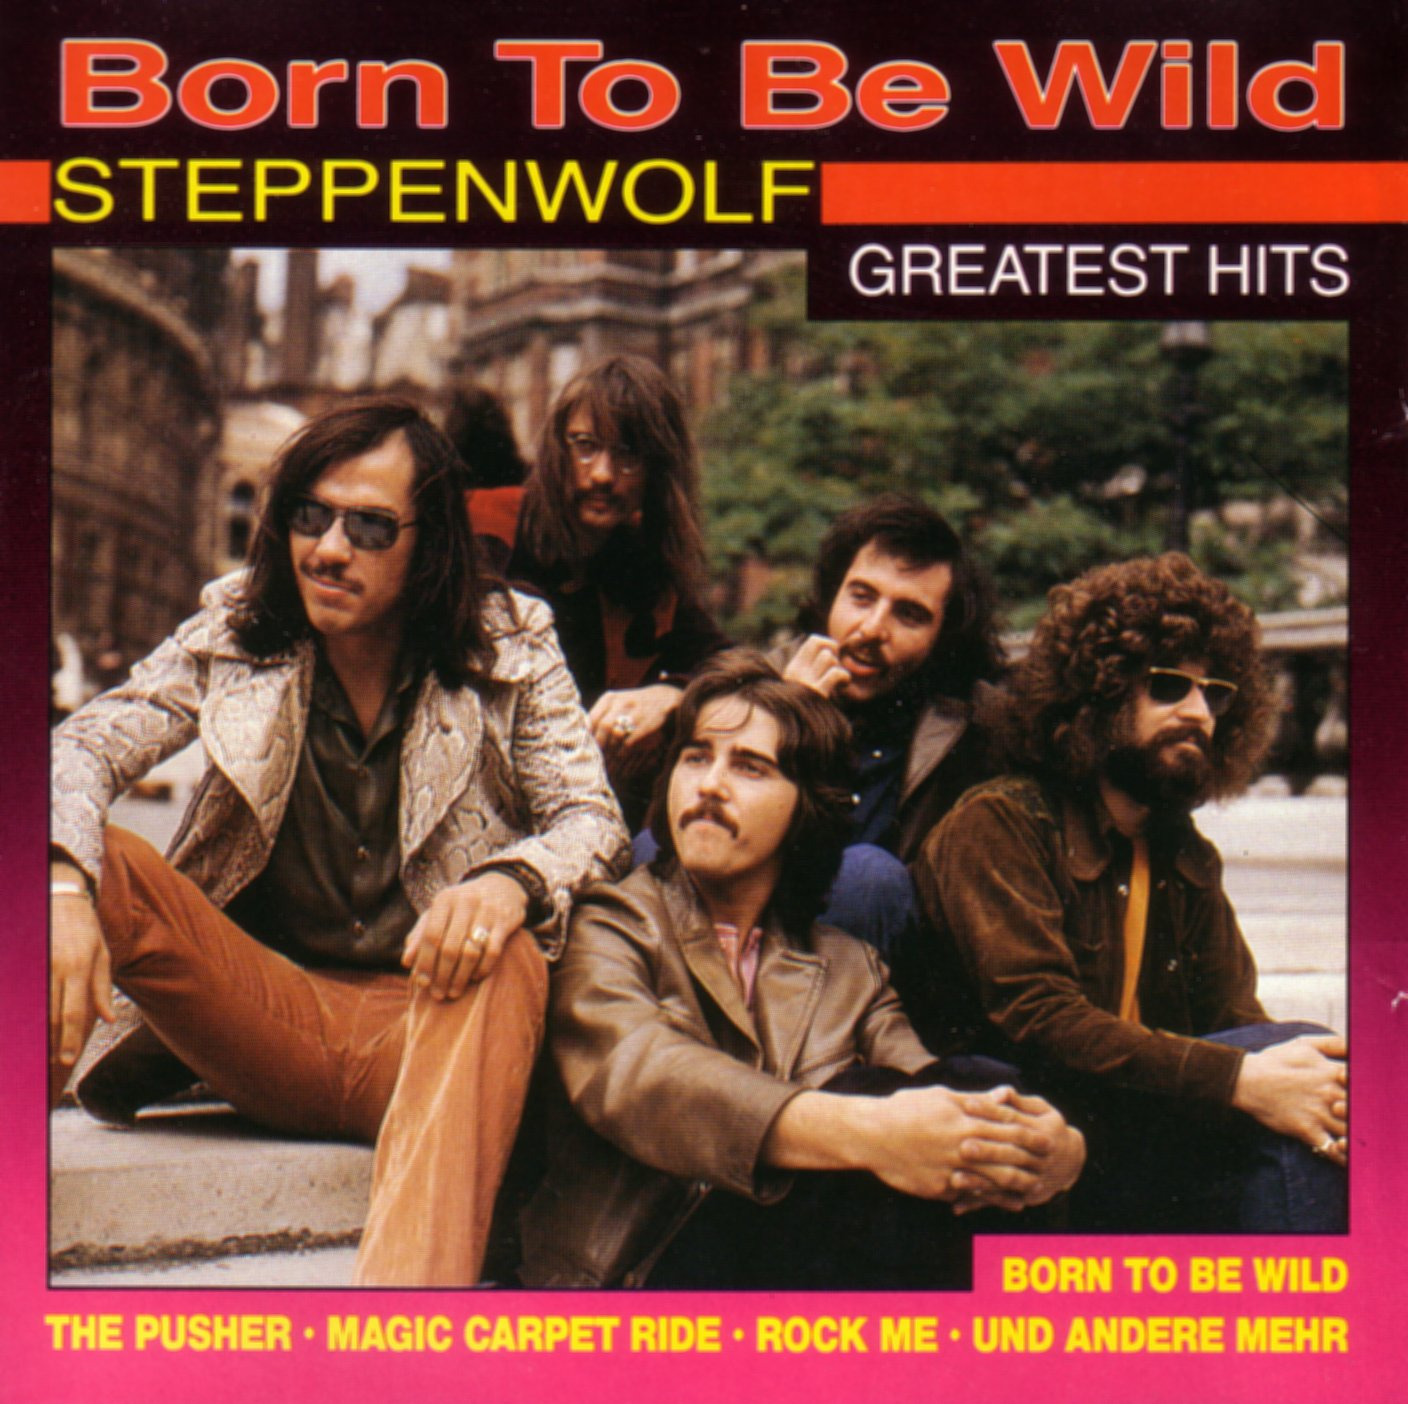 Film Steppenwolf Born to Be Wild